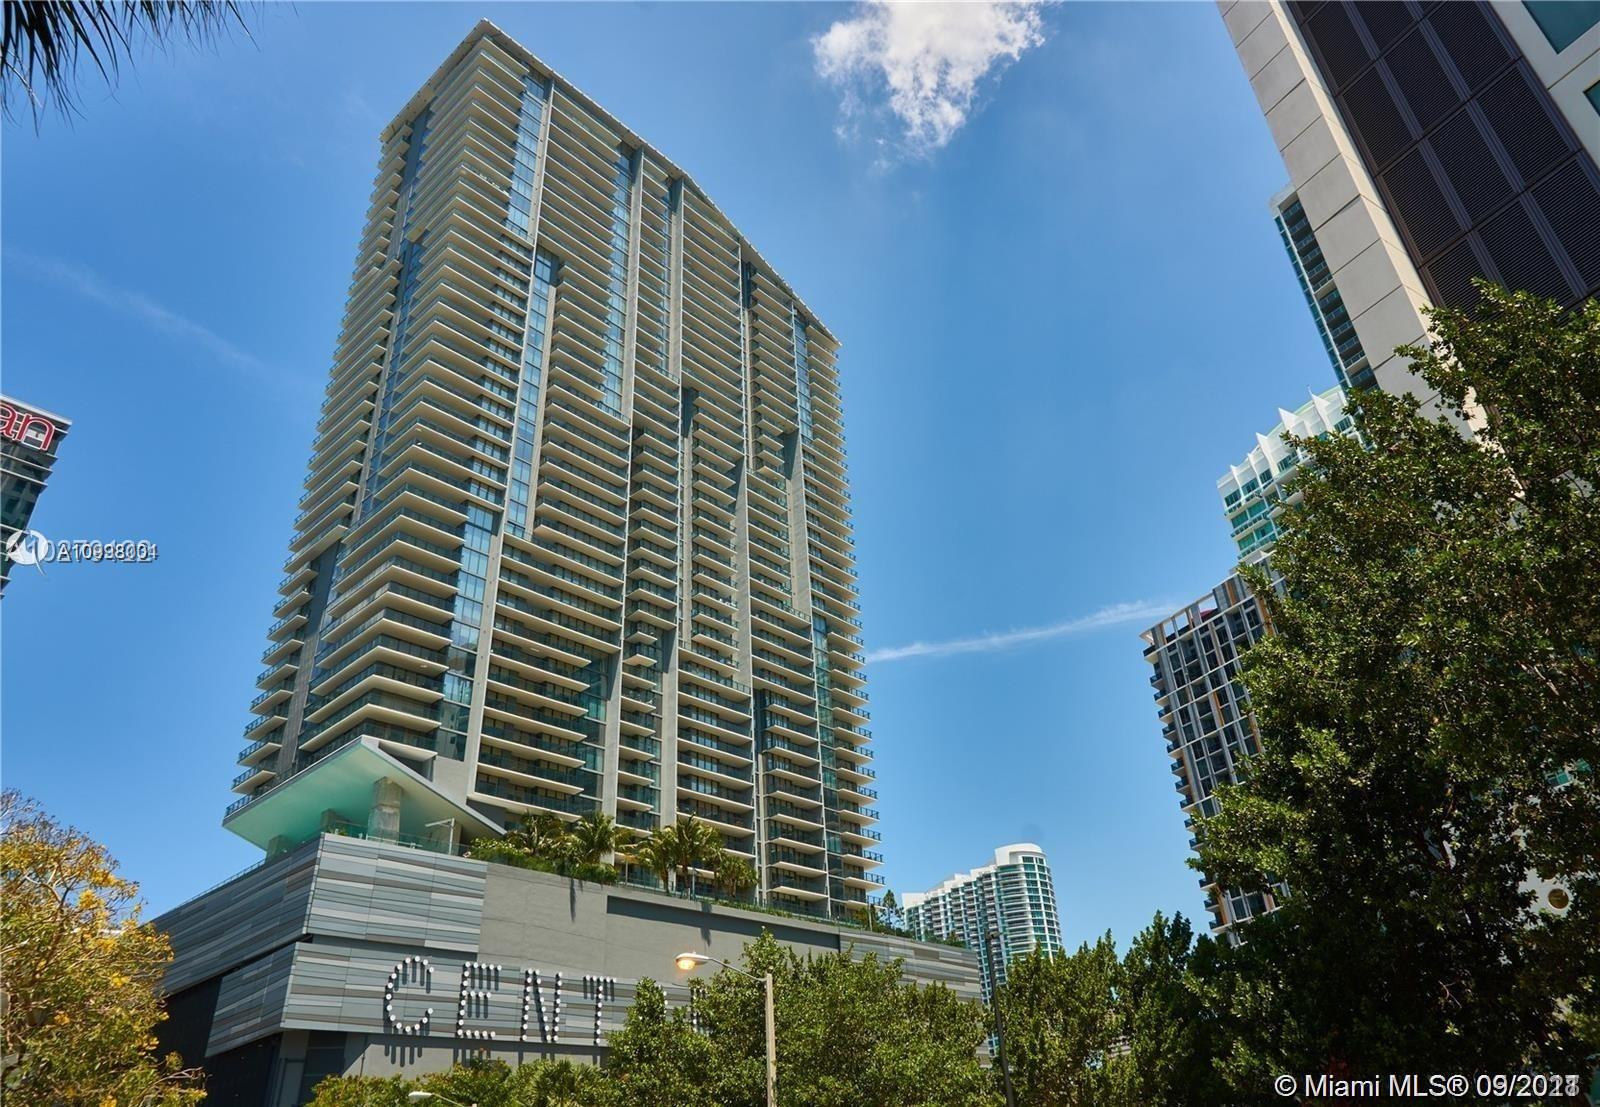 Rise Brickell City Centre #2411 - 88 SW 7th St #2411, Miami, FL 33130